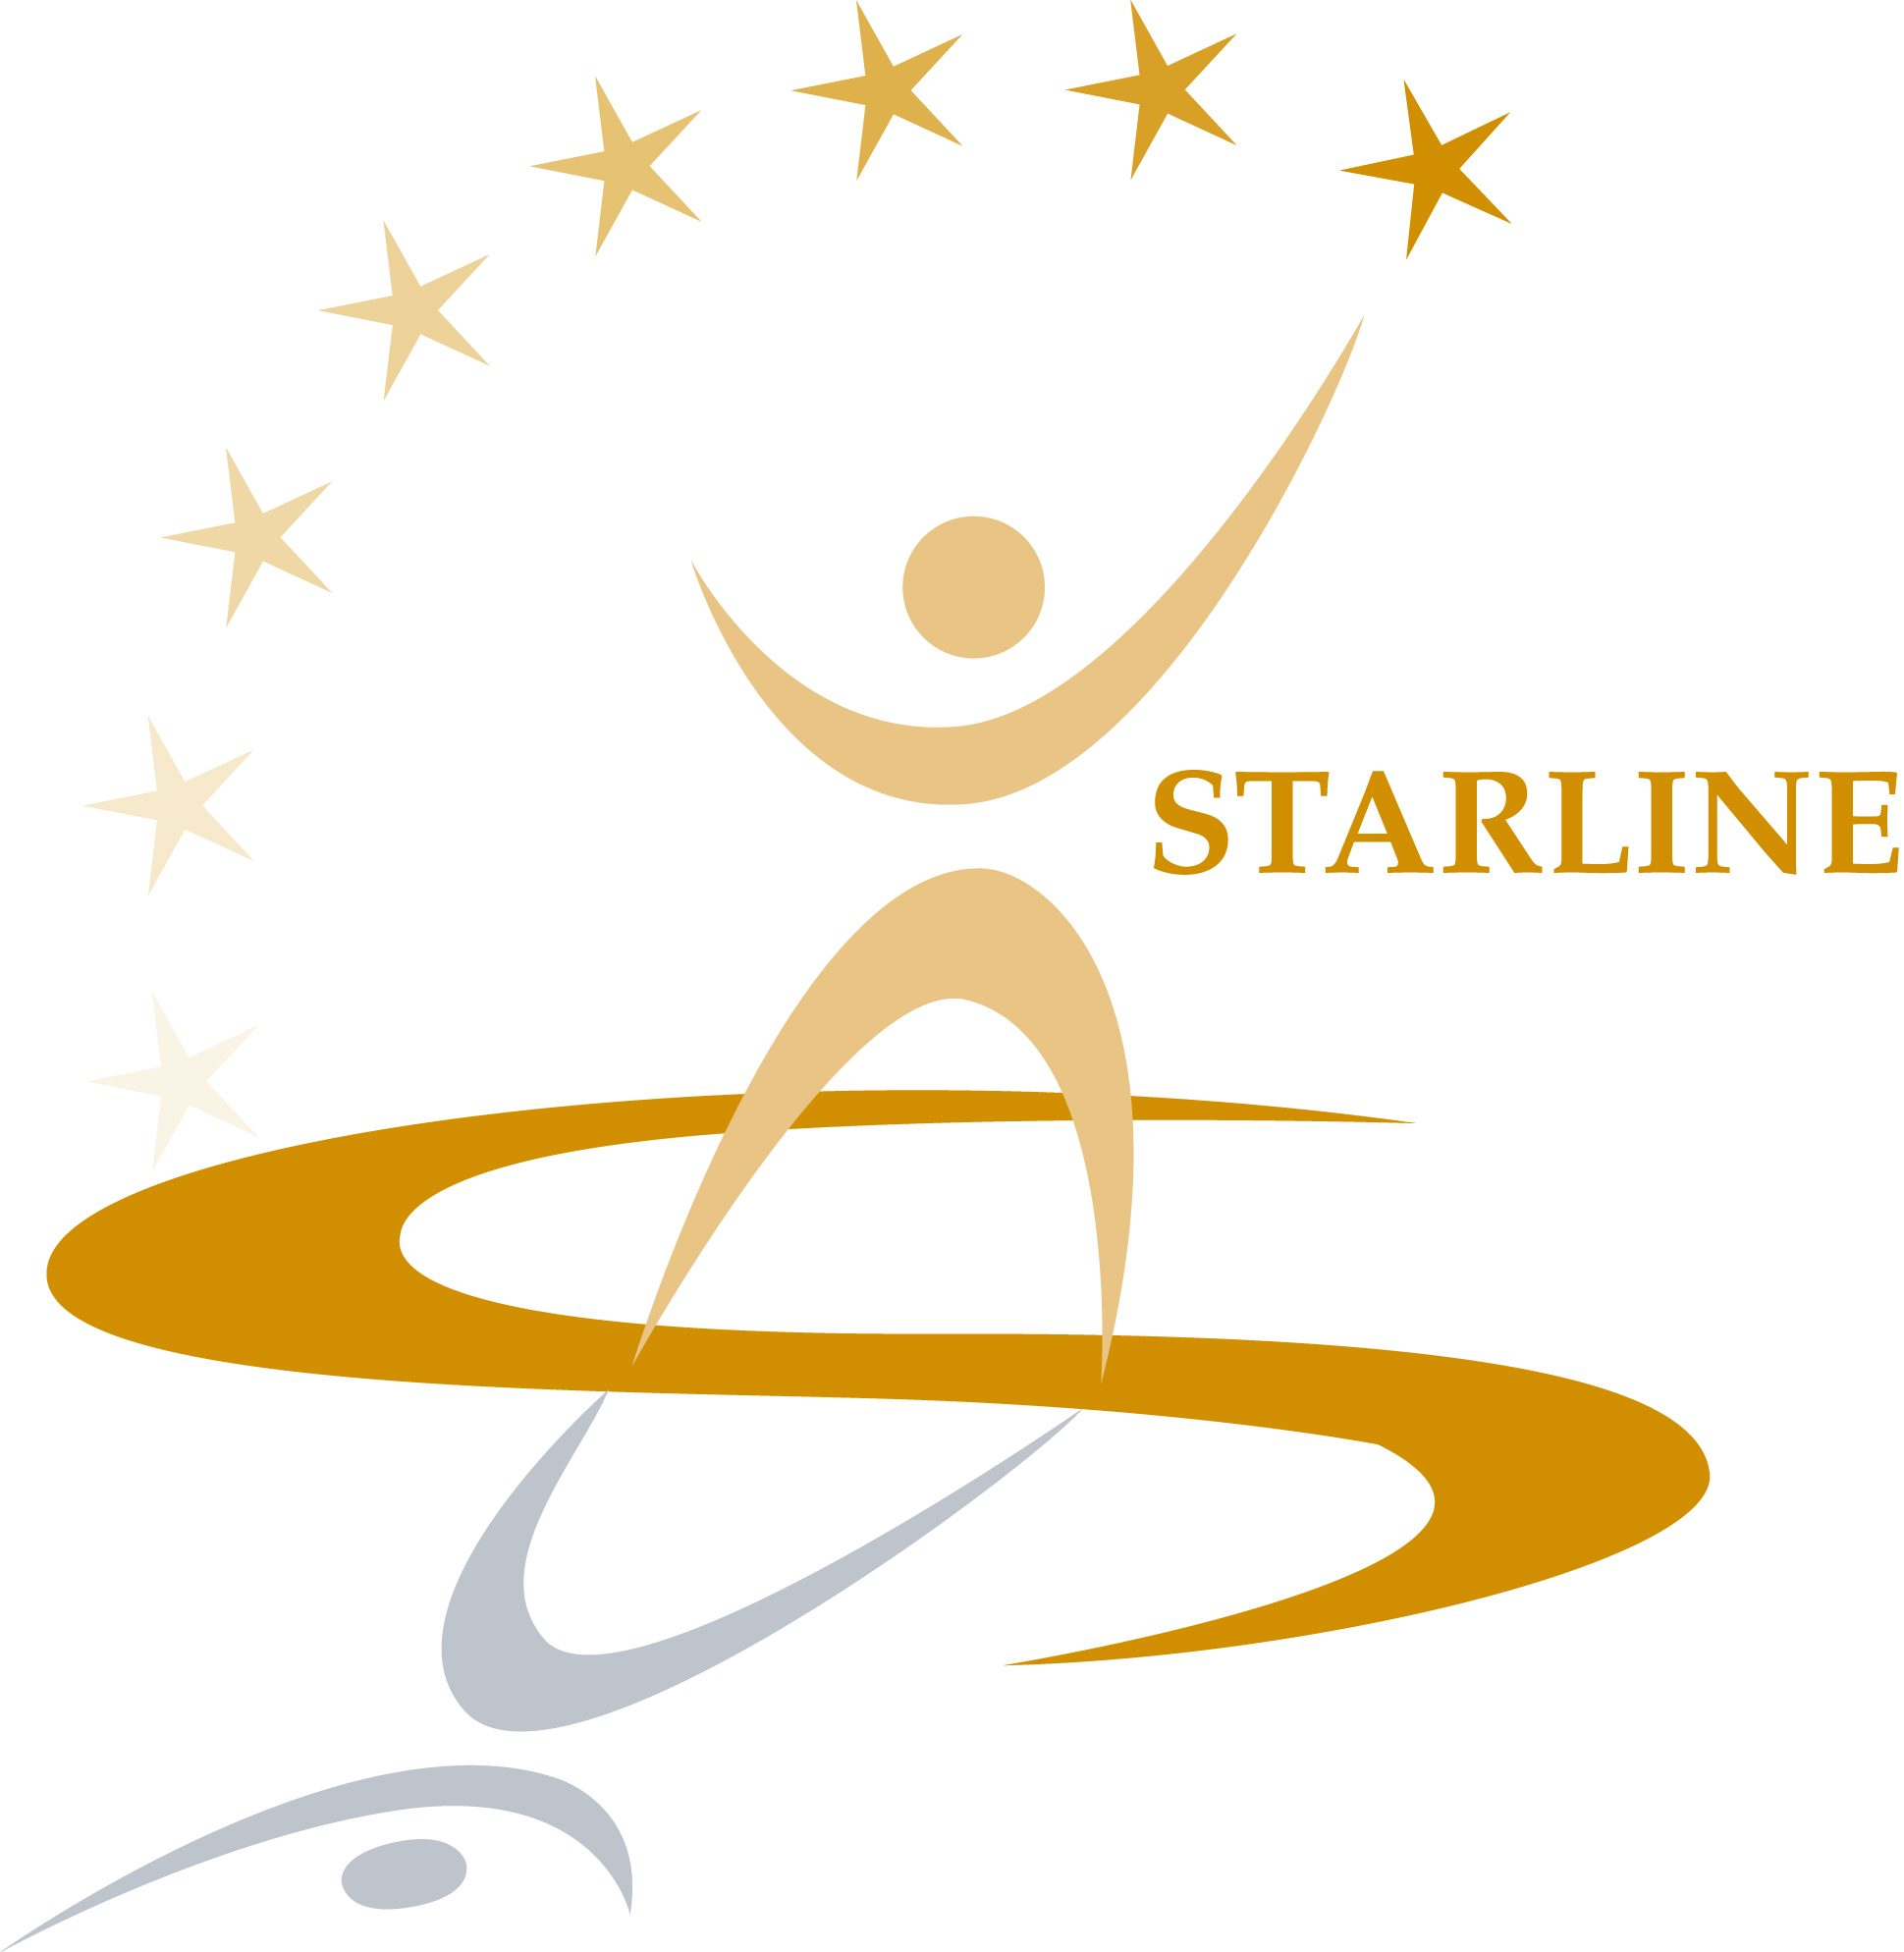 cropped-ci-starline_8stars11.jpg